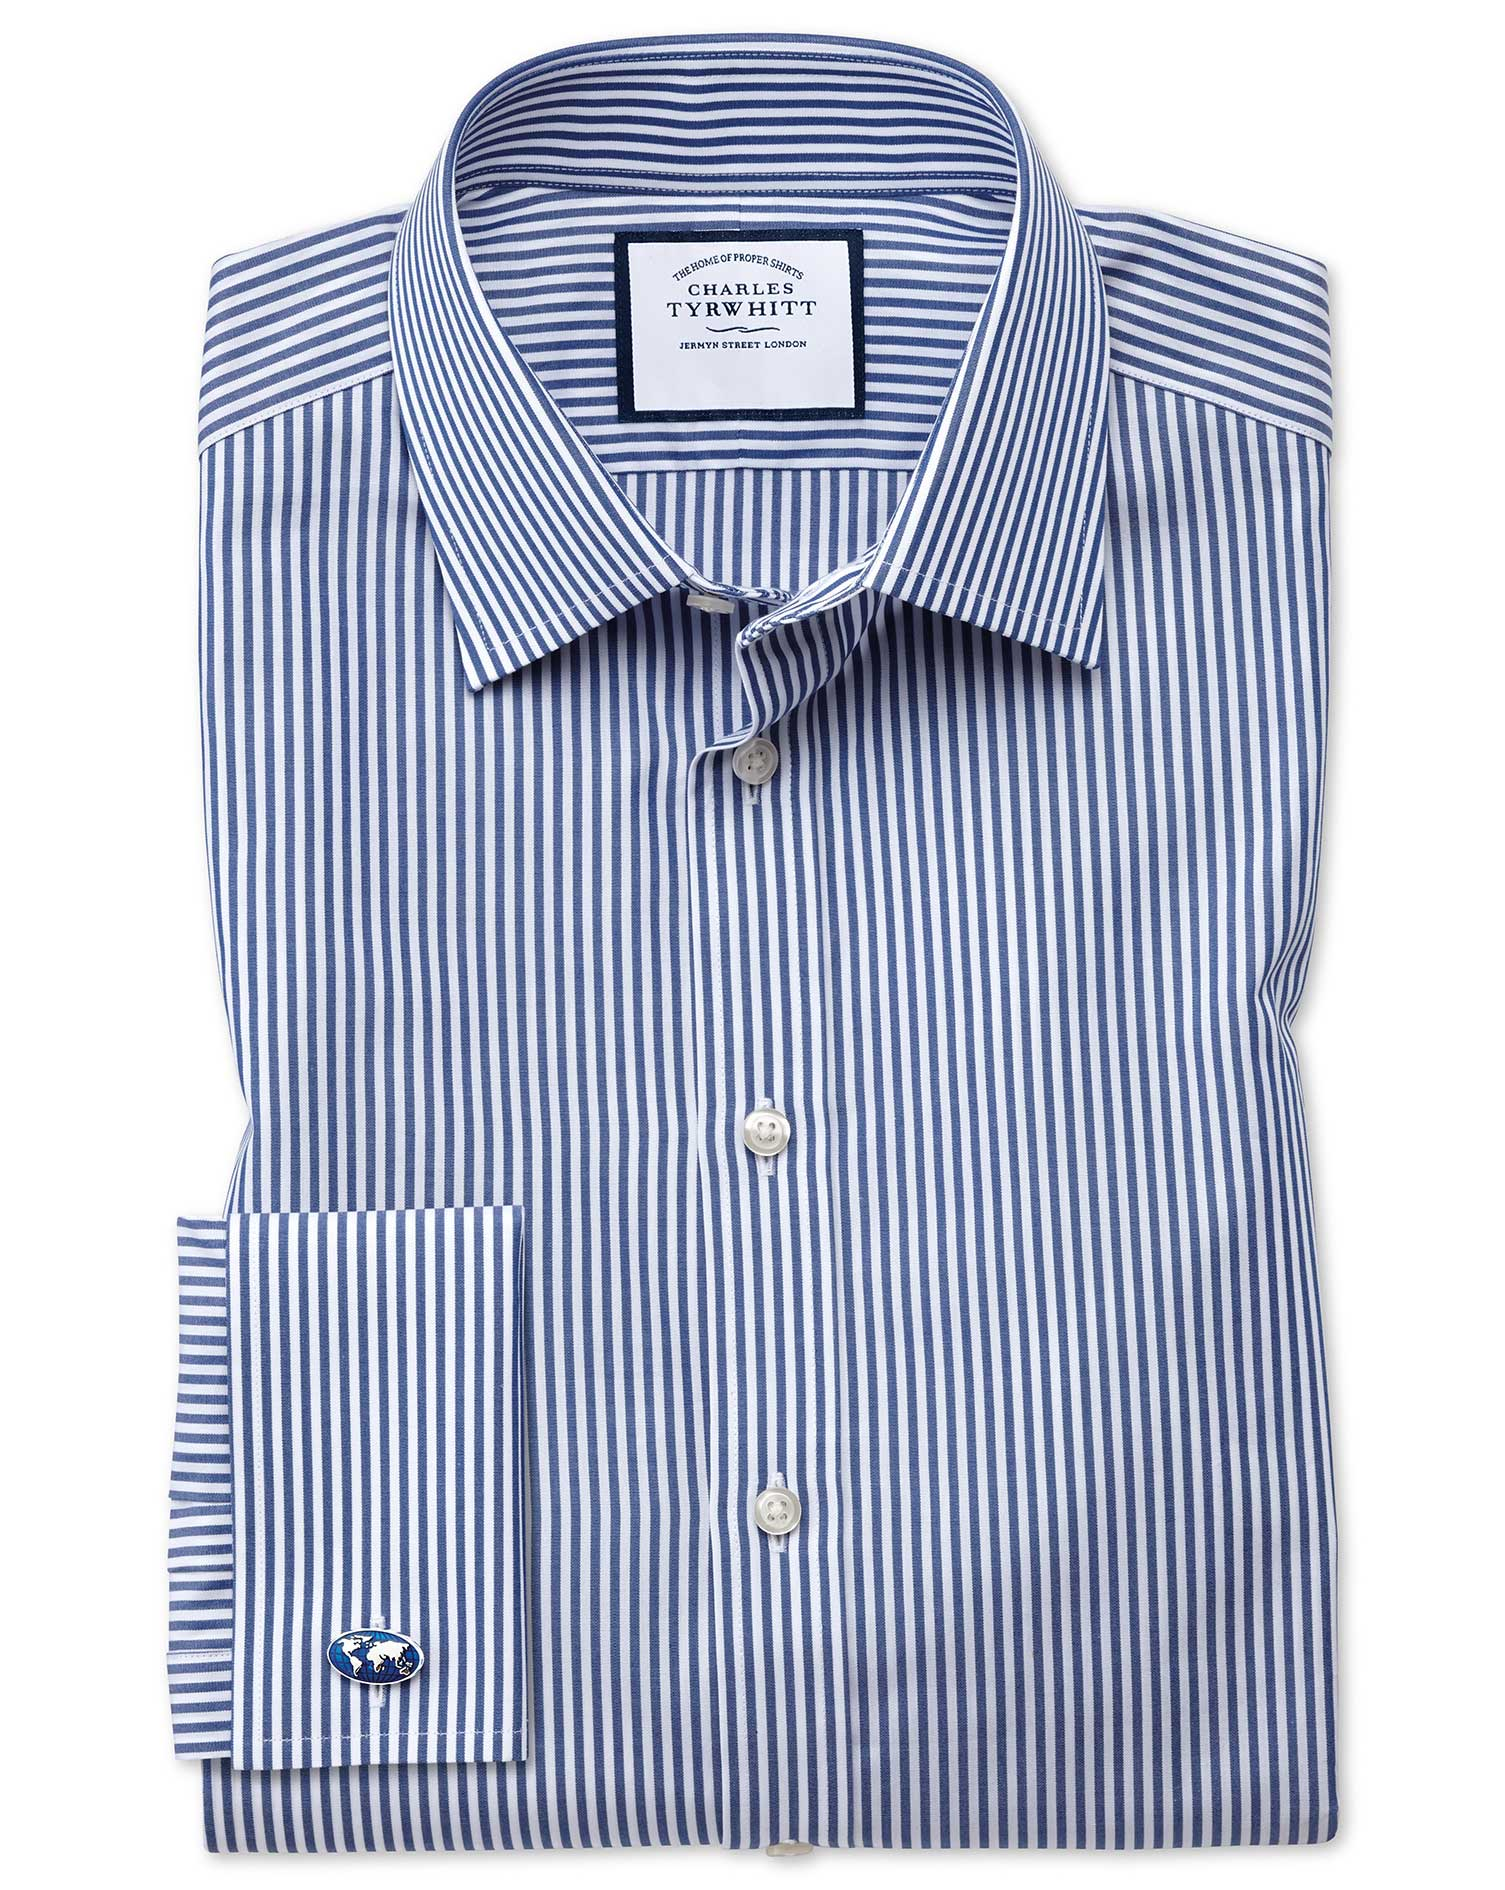 Classic Fit Bengal Stripe Navy Blue Cotton Formal Shirt Single Cuff Size 17/38 by Charles Tyrwhitt